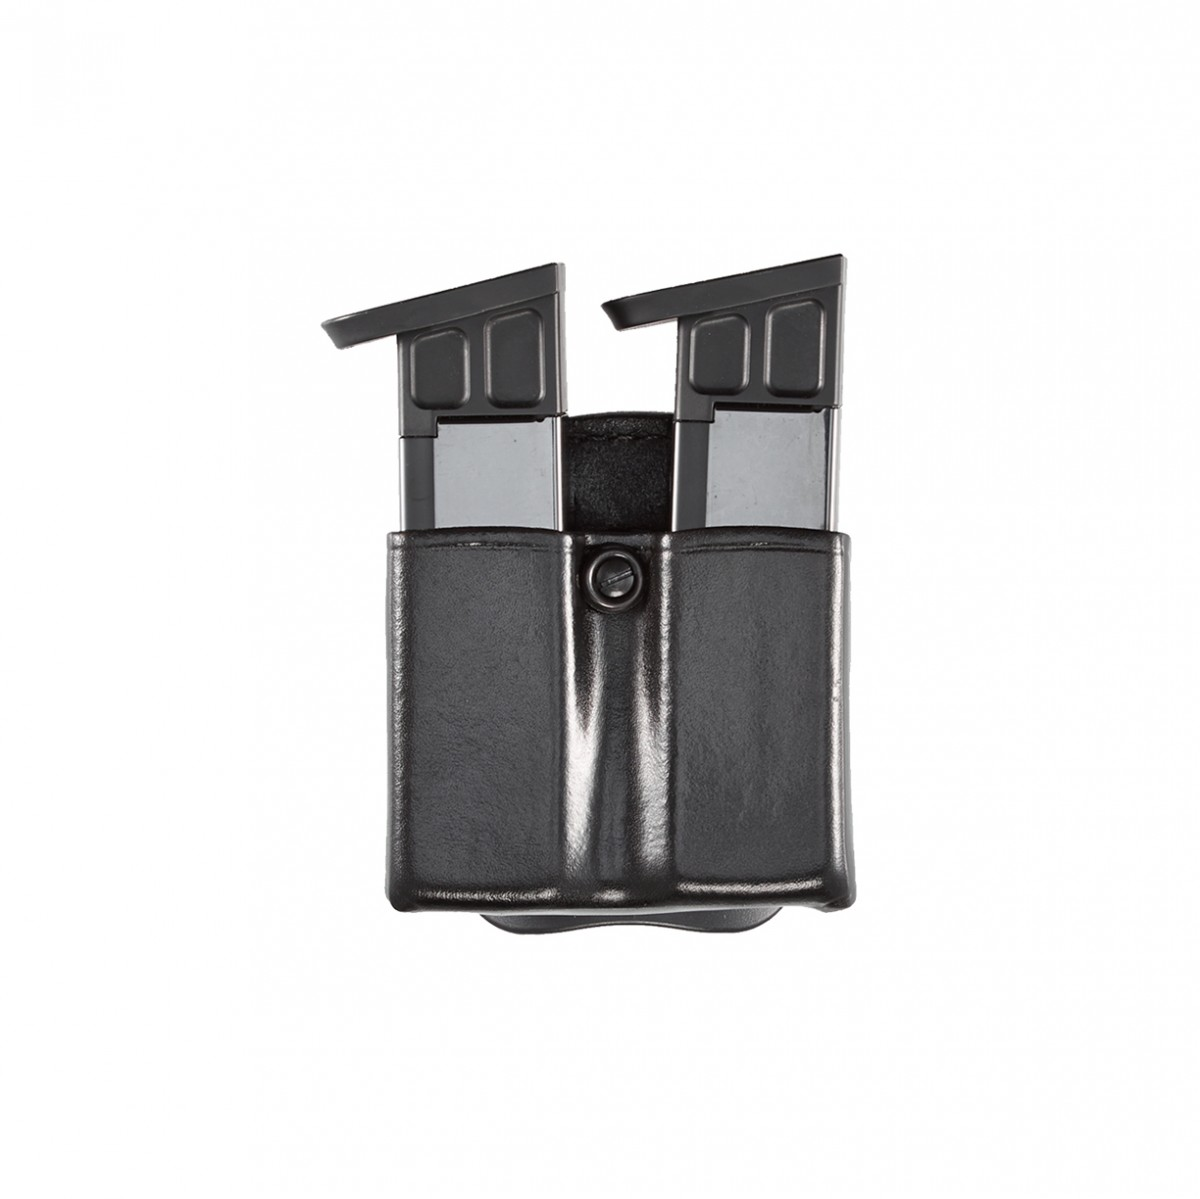 D.M.S.™ Twin™ Dual Mag Pouch Model: 523